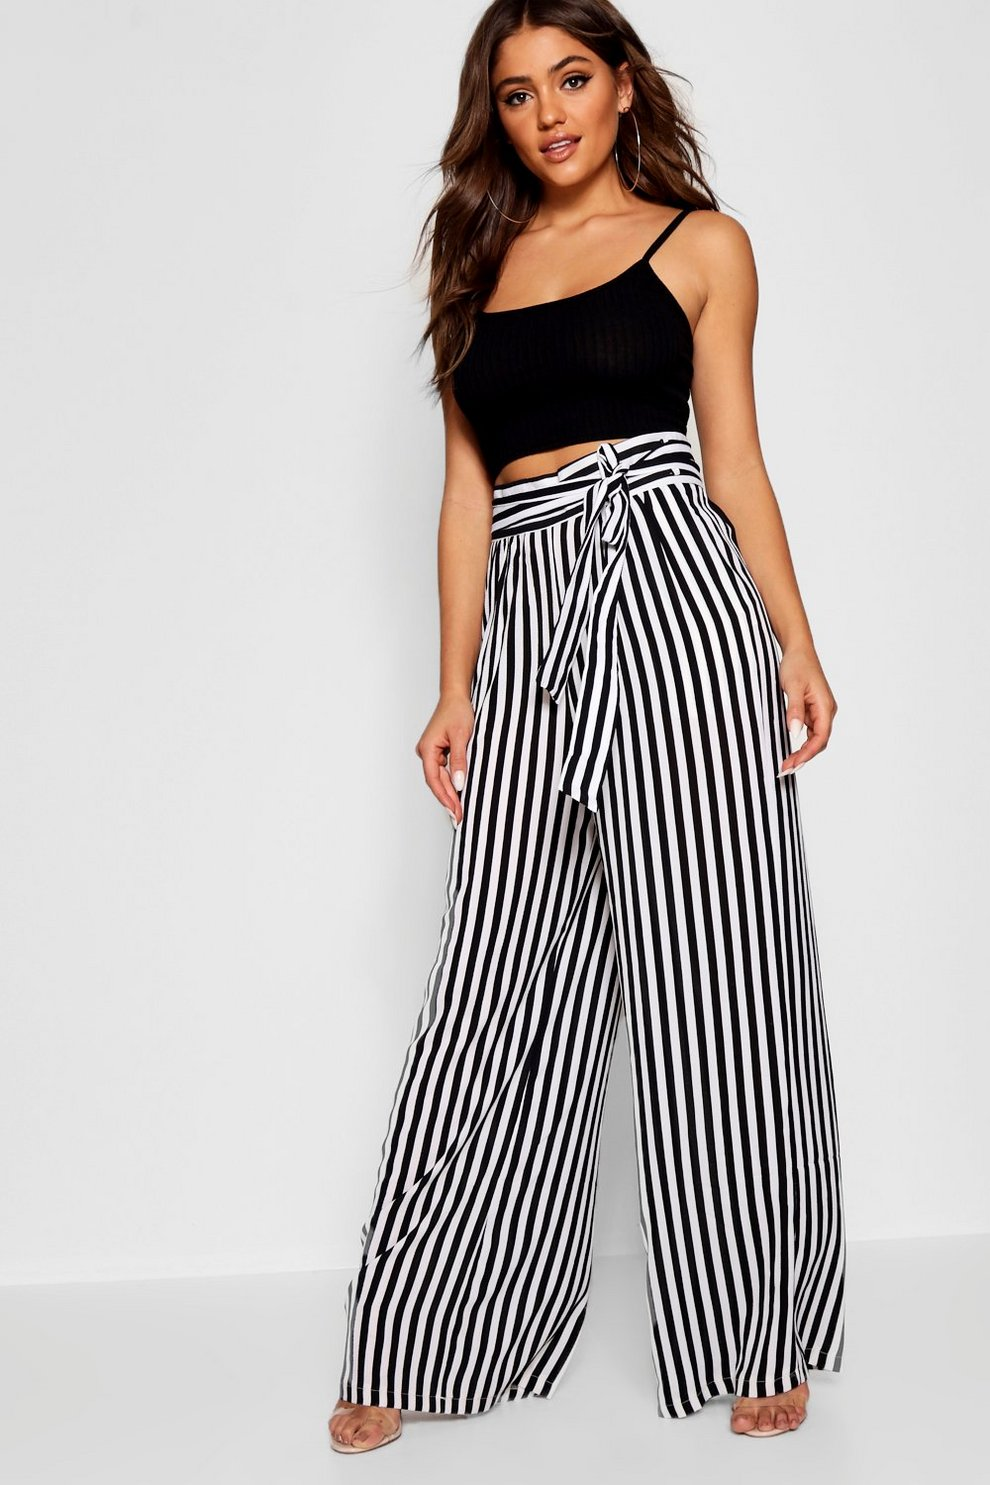 Clearance Best Prices Boohoo Tall High Waisted Stripe Wide Leg Trousers View For Sale Outlet Cheapest Free Shipping New Best Store To Get Sale Online 0Zj5V